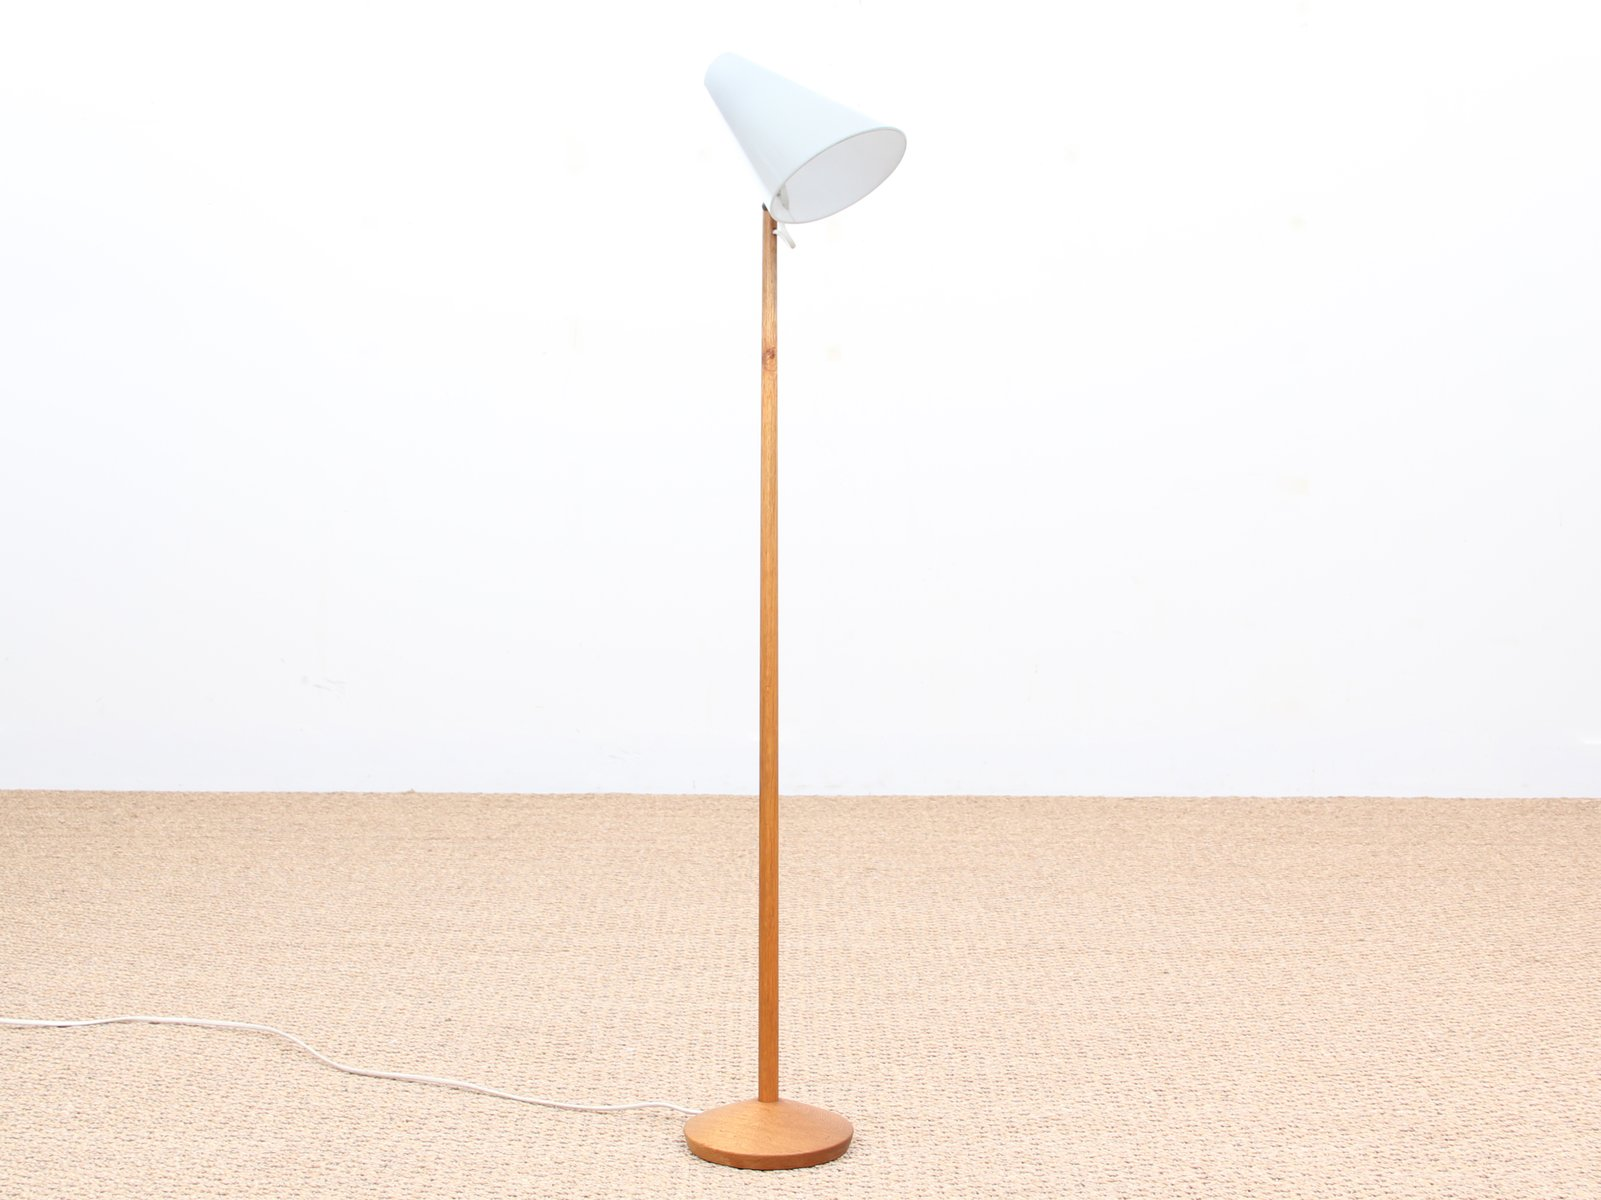 Mid century small floor lamp by uno osten kristiansson for luxus mid century small floor lamp by uno osten kristiansson for luxus aloadofball Gallery